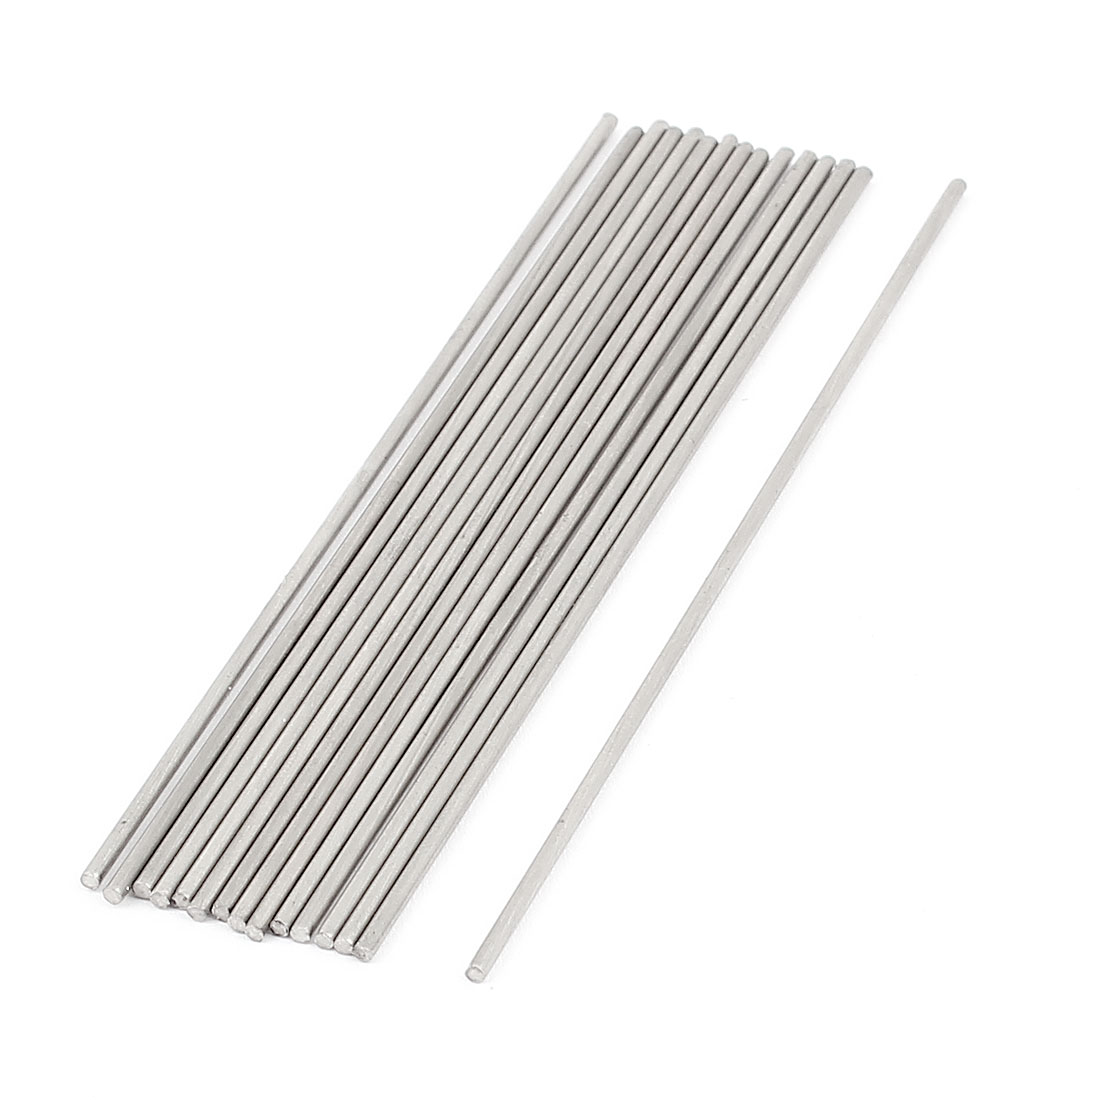 RC Airplane Car Part Stainless Steel Round Rods 1.5mm x 100mm 15 Pcs